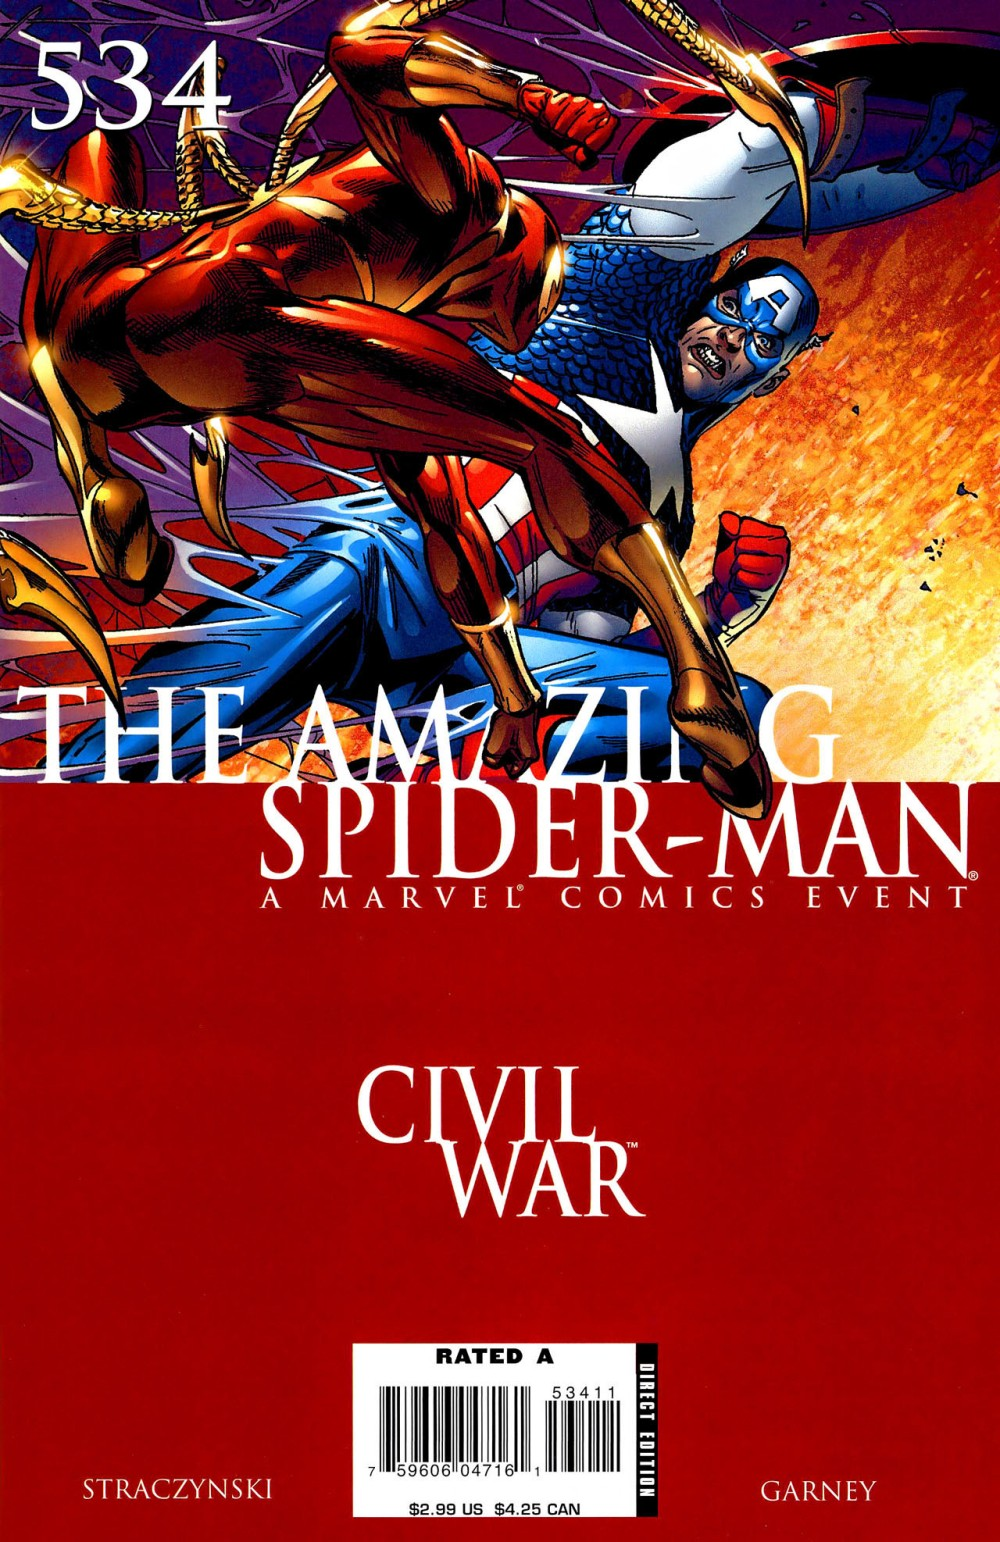 Amazing Spider-Man 0534.JPG